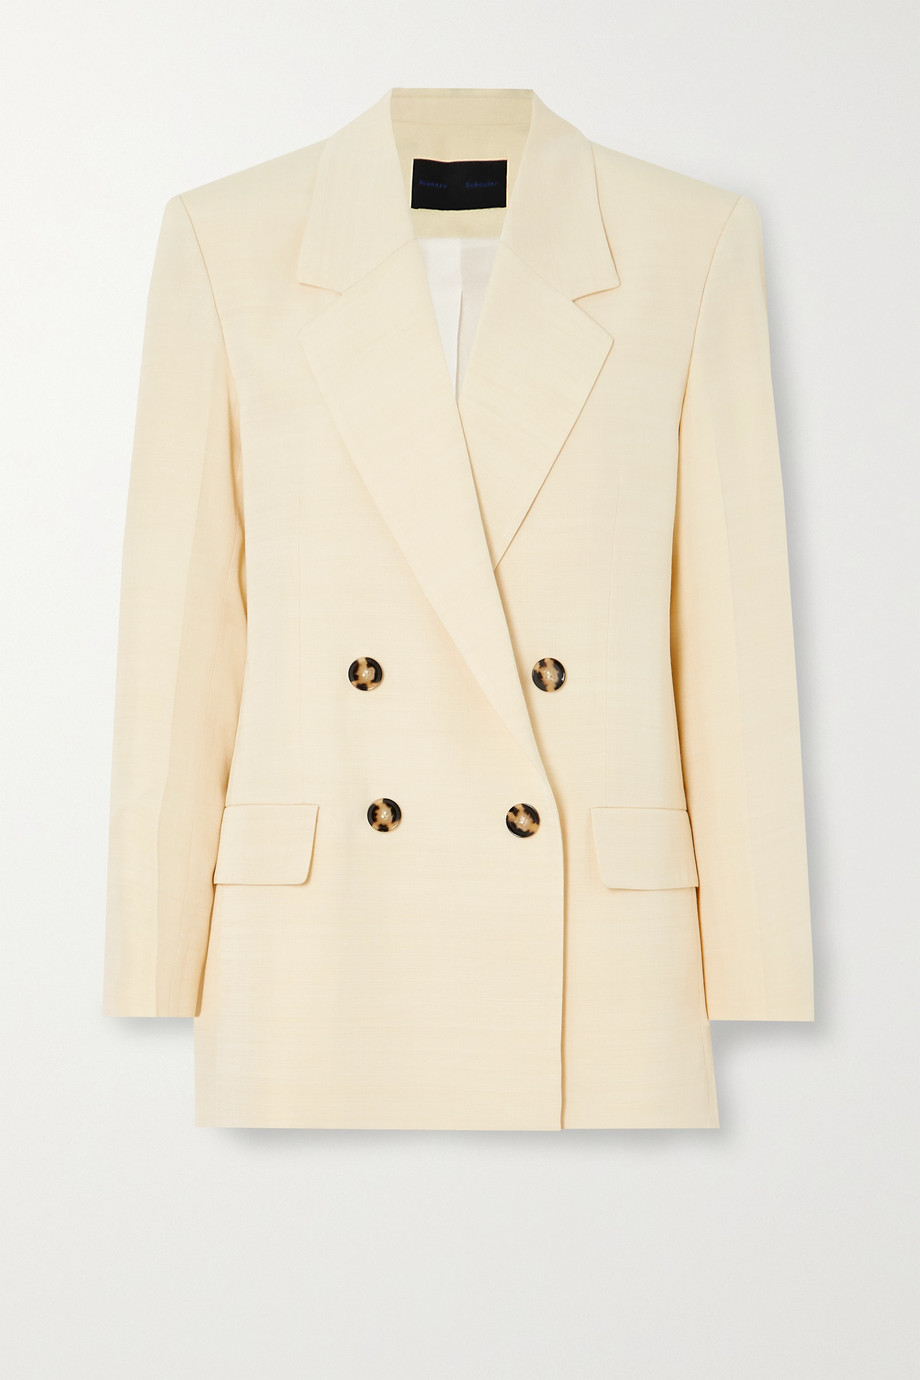 Proenza Schouler Double-breasted woven blazer